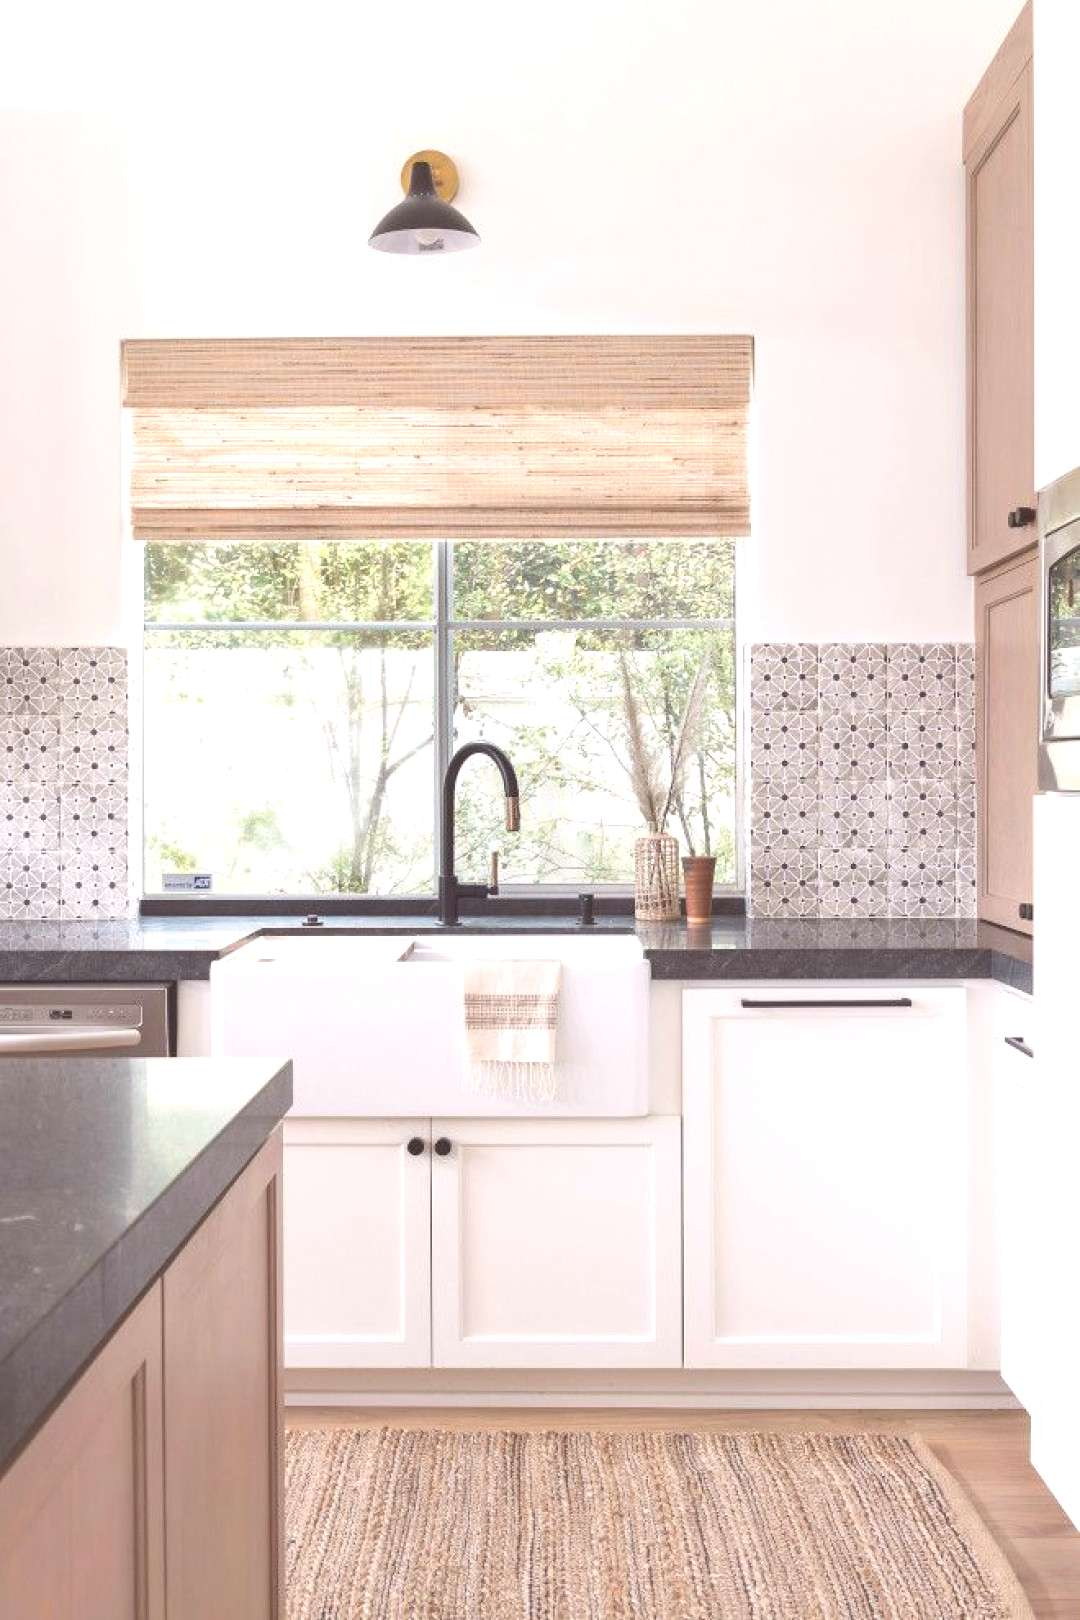 Kitchen Trend Wood Stained and Painted Cabinets Kitchen Trend Wood Stained and Painted Cabinets,